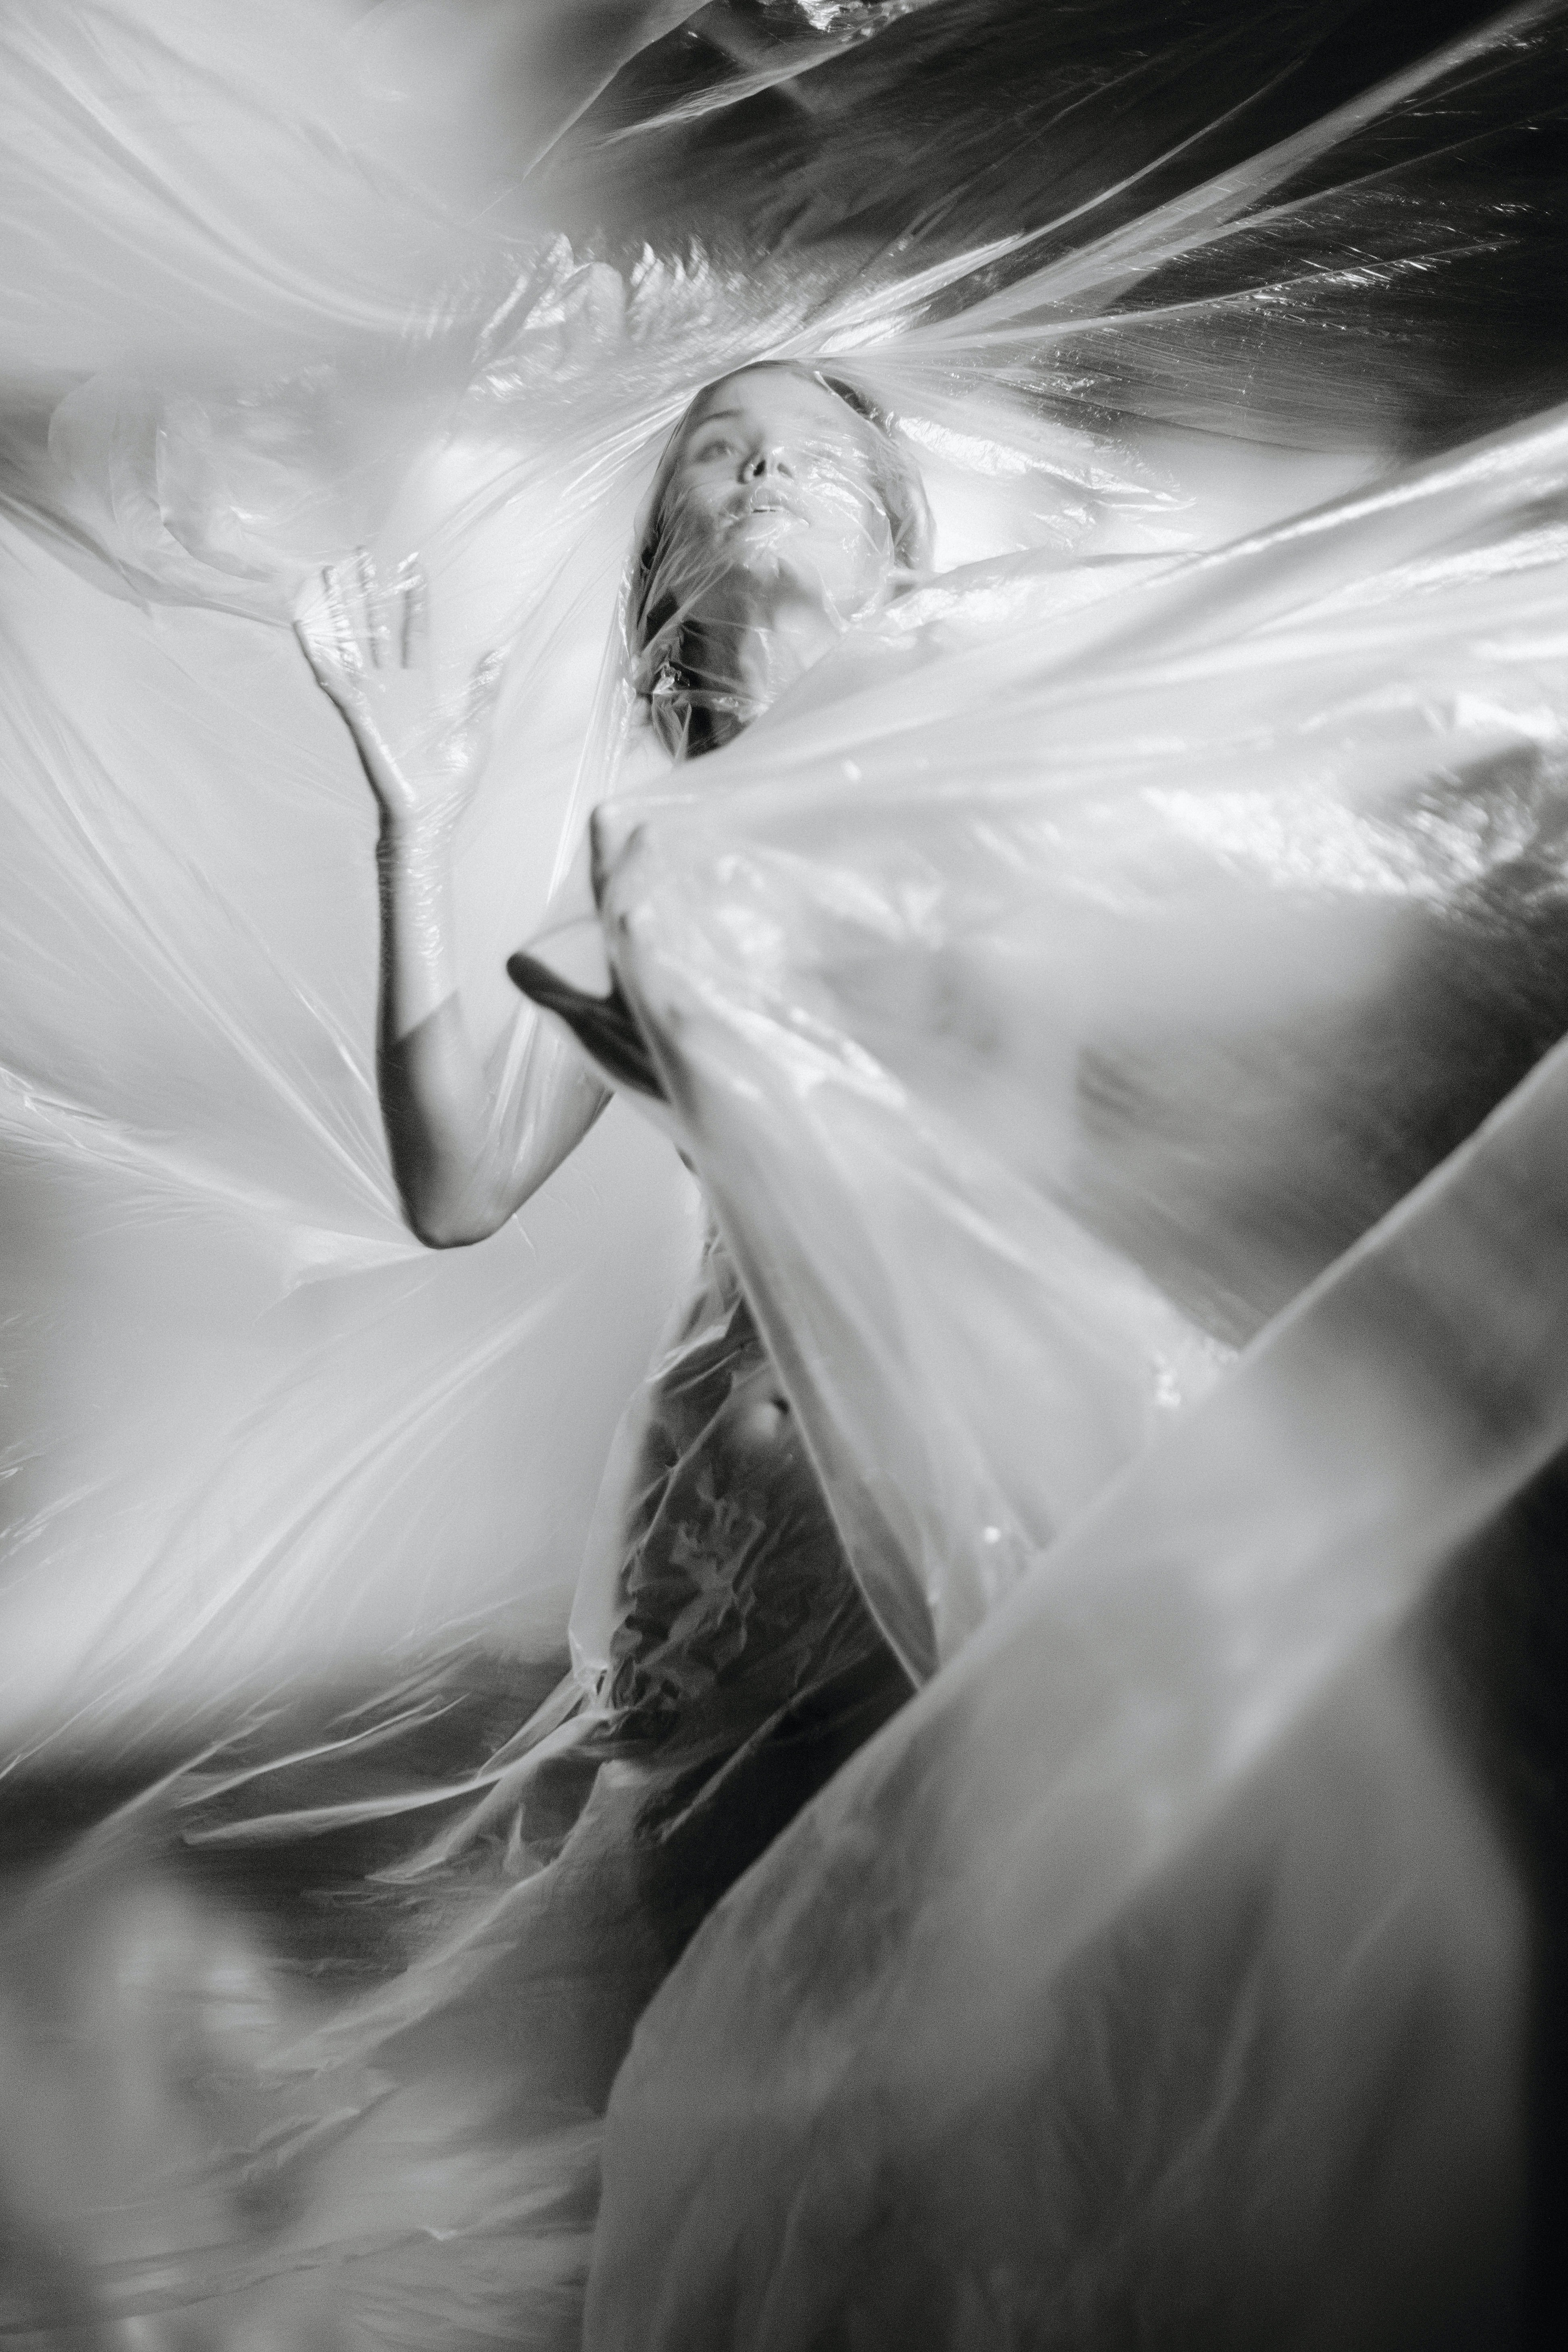 grayscale photography of woman covered in plastic